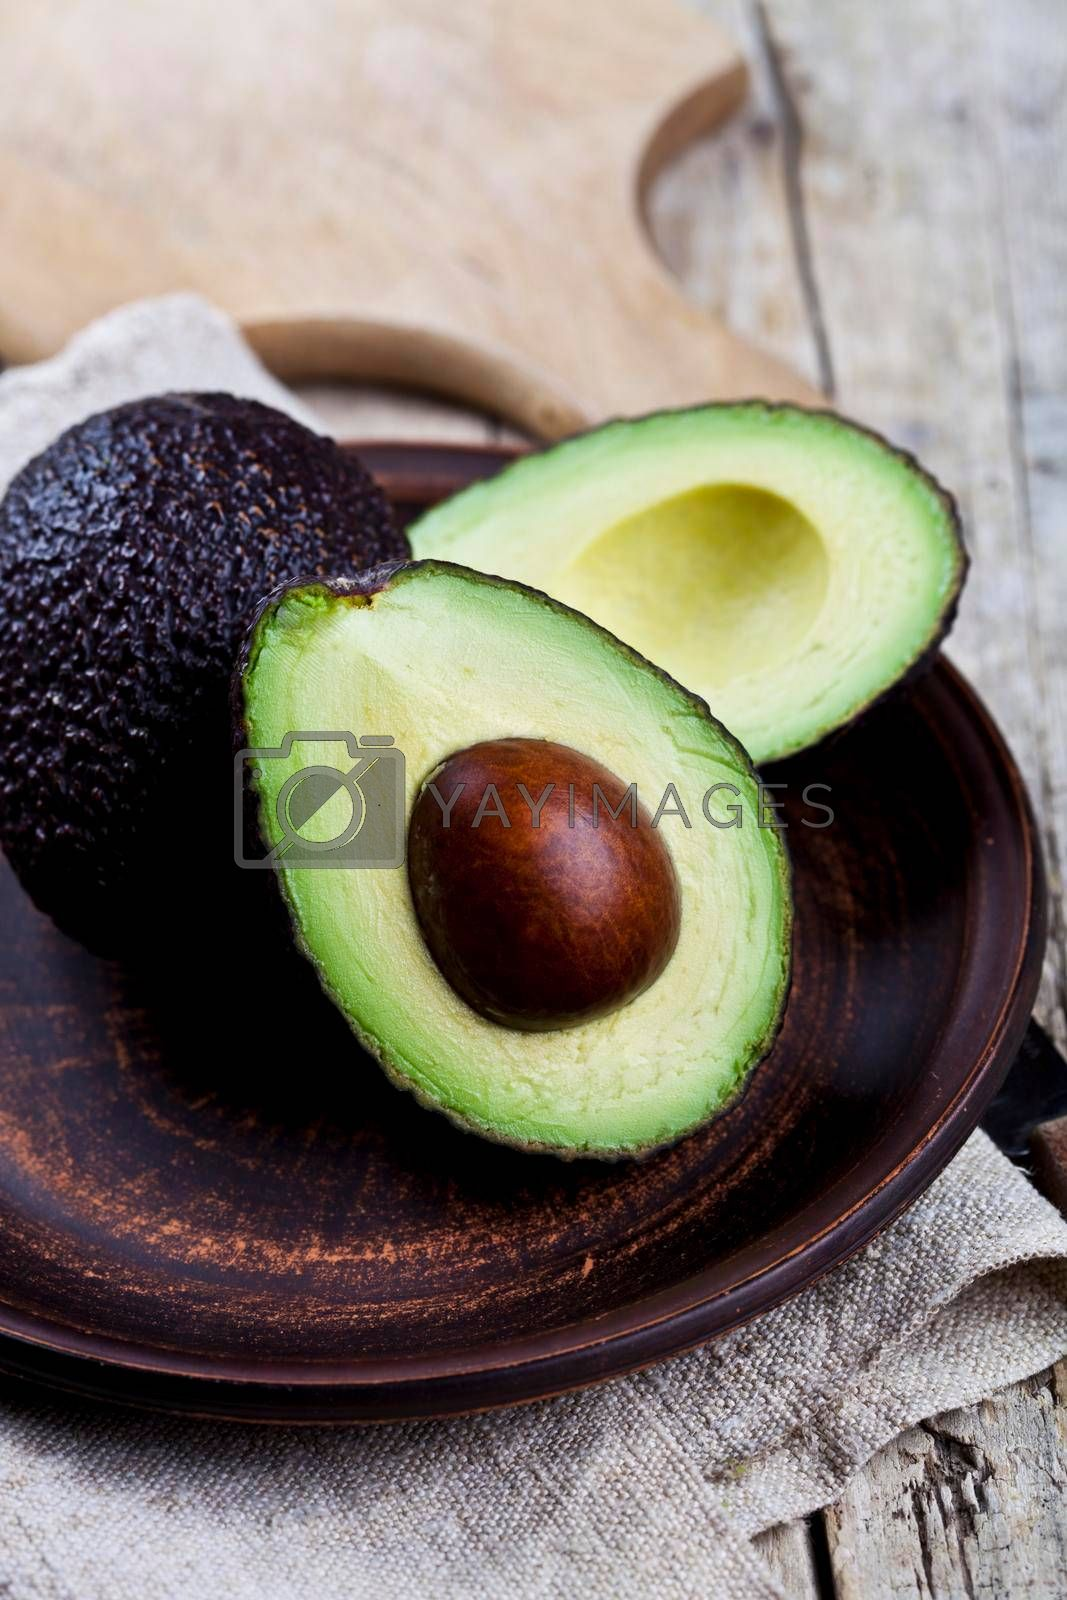 Fresh organic avocado on ceramic plate and linen napkin on rustic wooden table background. Healthy food concept.